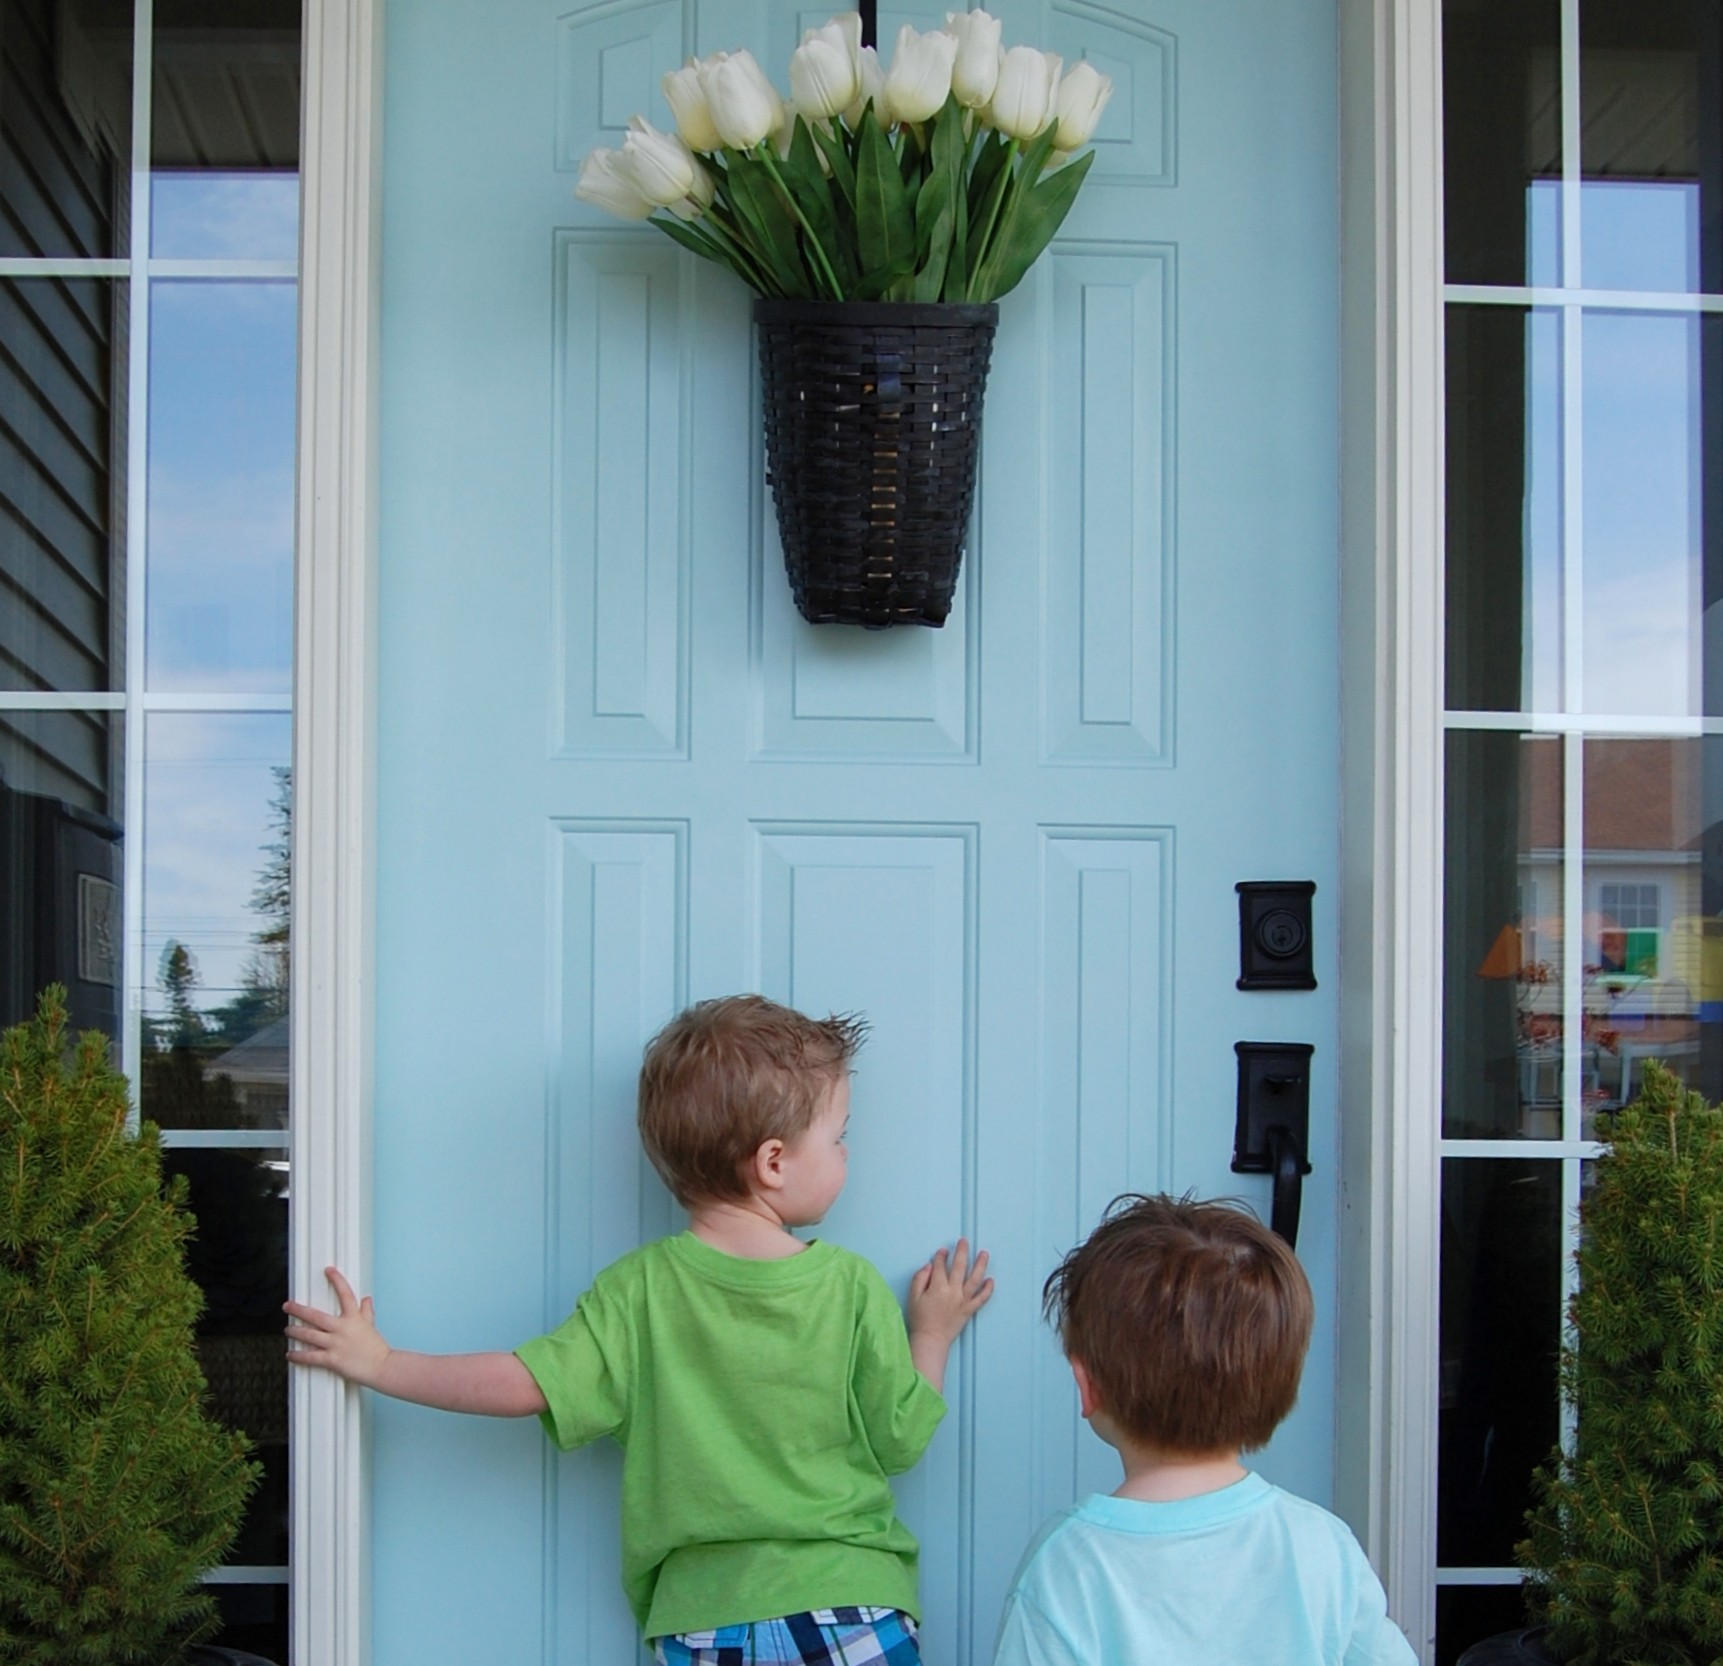 How to paint a door in under an hour {The Harried Mom's Guide to Paint a Front Door!}